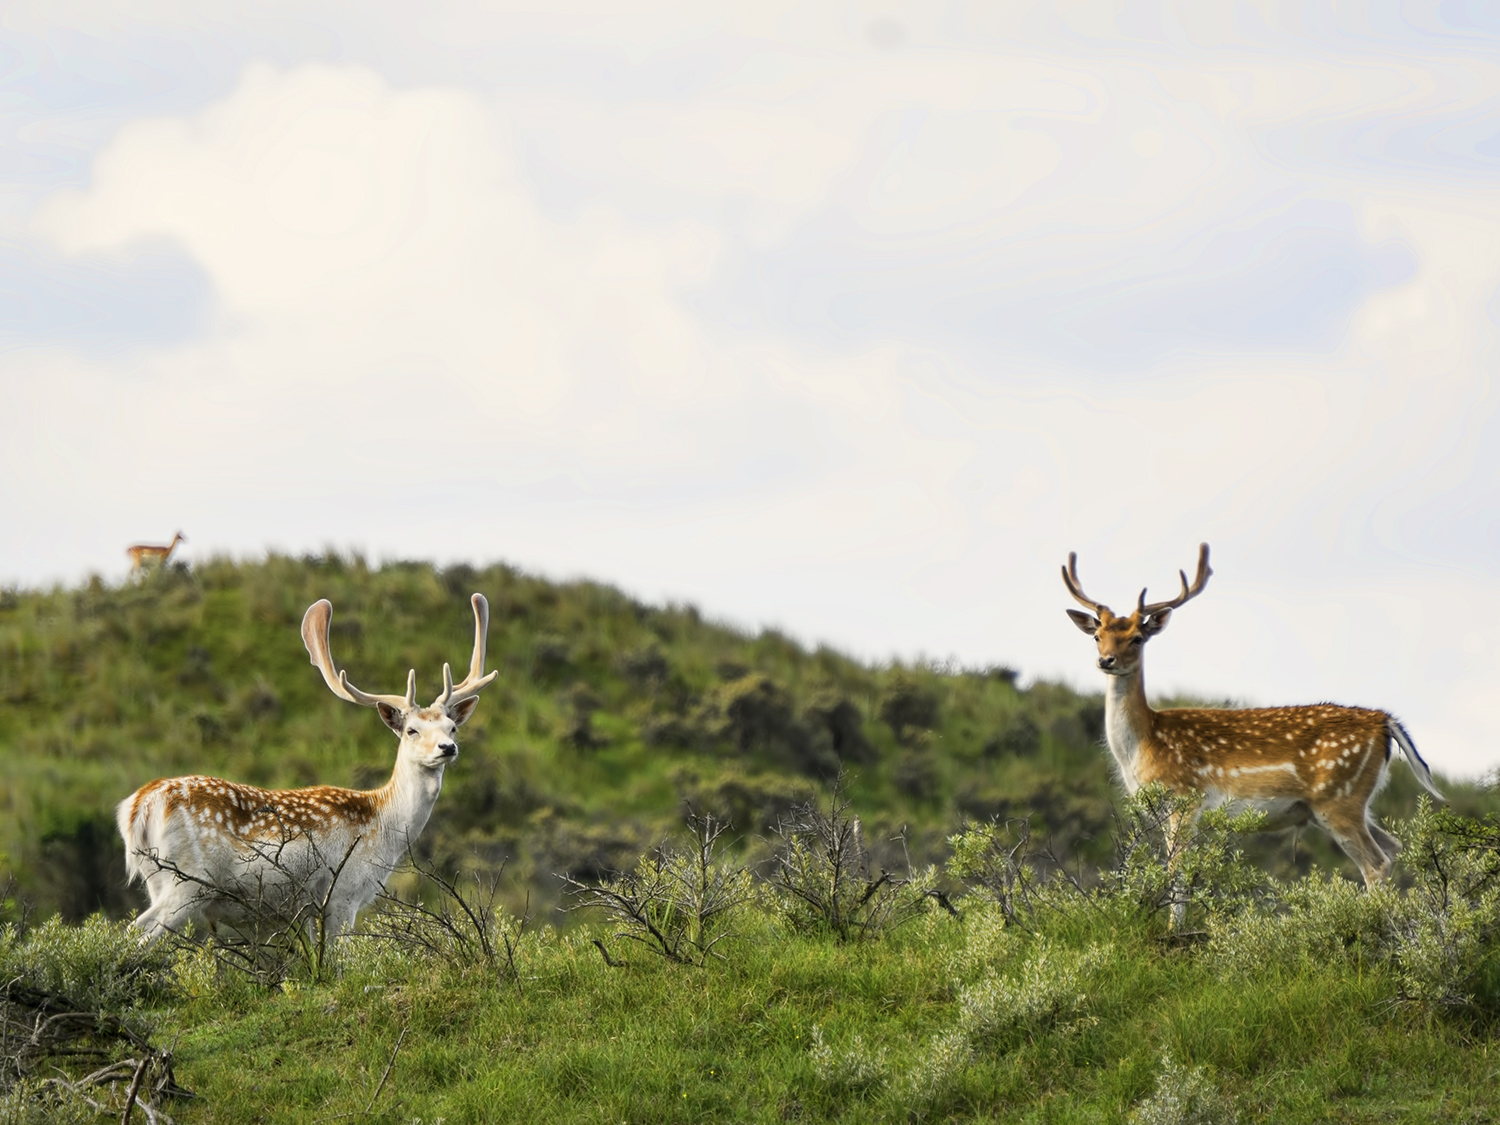 Deer in Amsterdamse waterleidingduinen